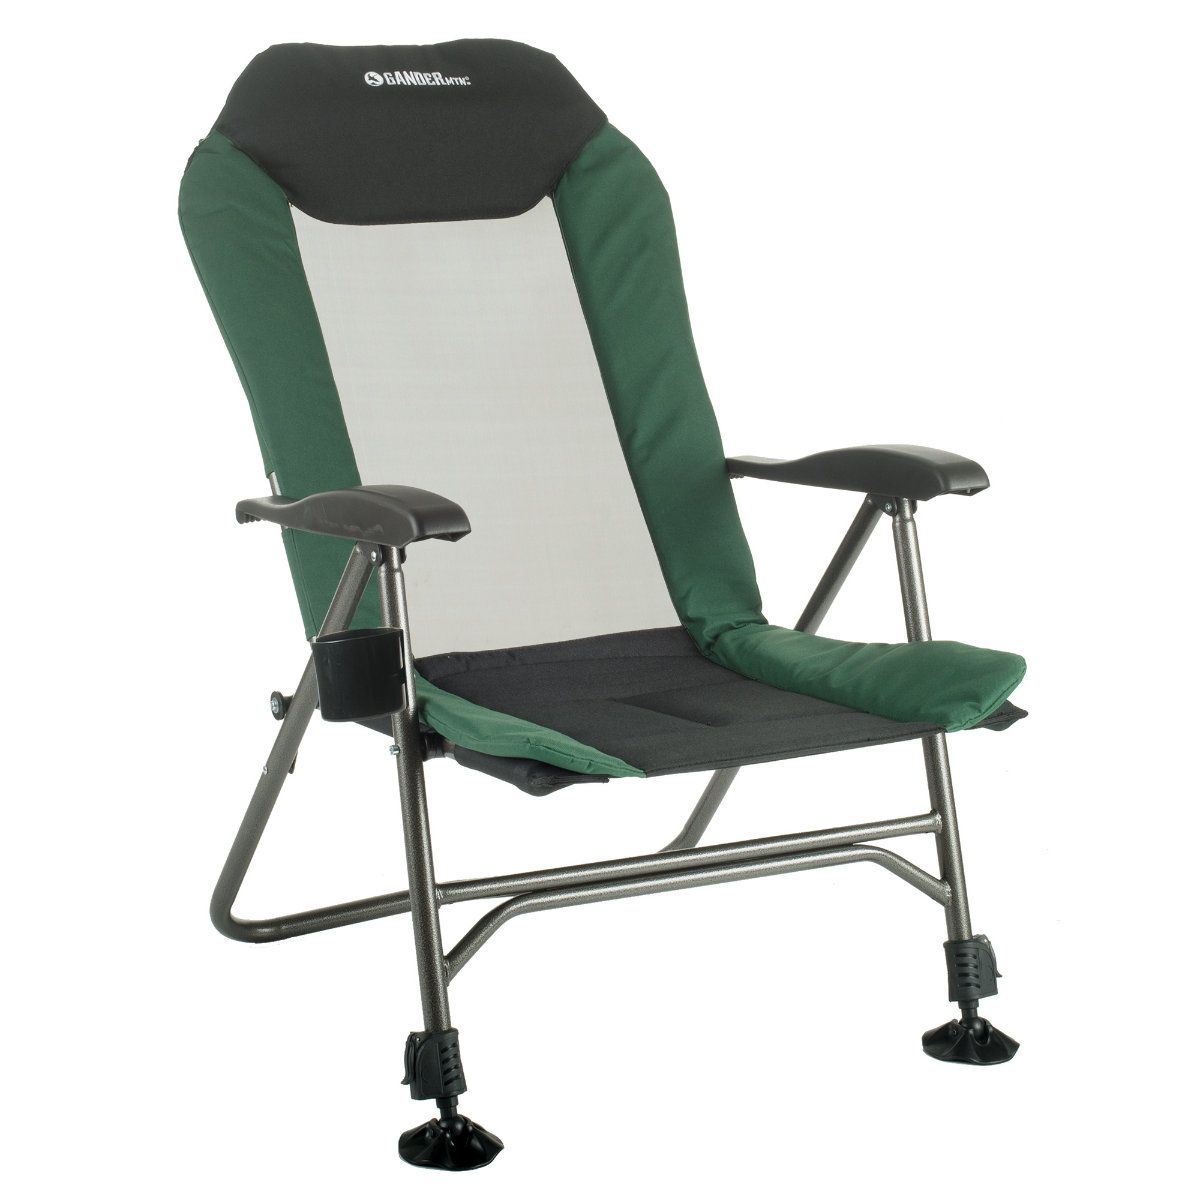 Marvelous Gander Mountain Sportsman Chair 770374 Gander Mountain Beatyapartments Chair Design Images Beatyapartmentscom